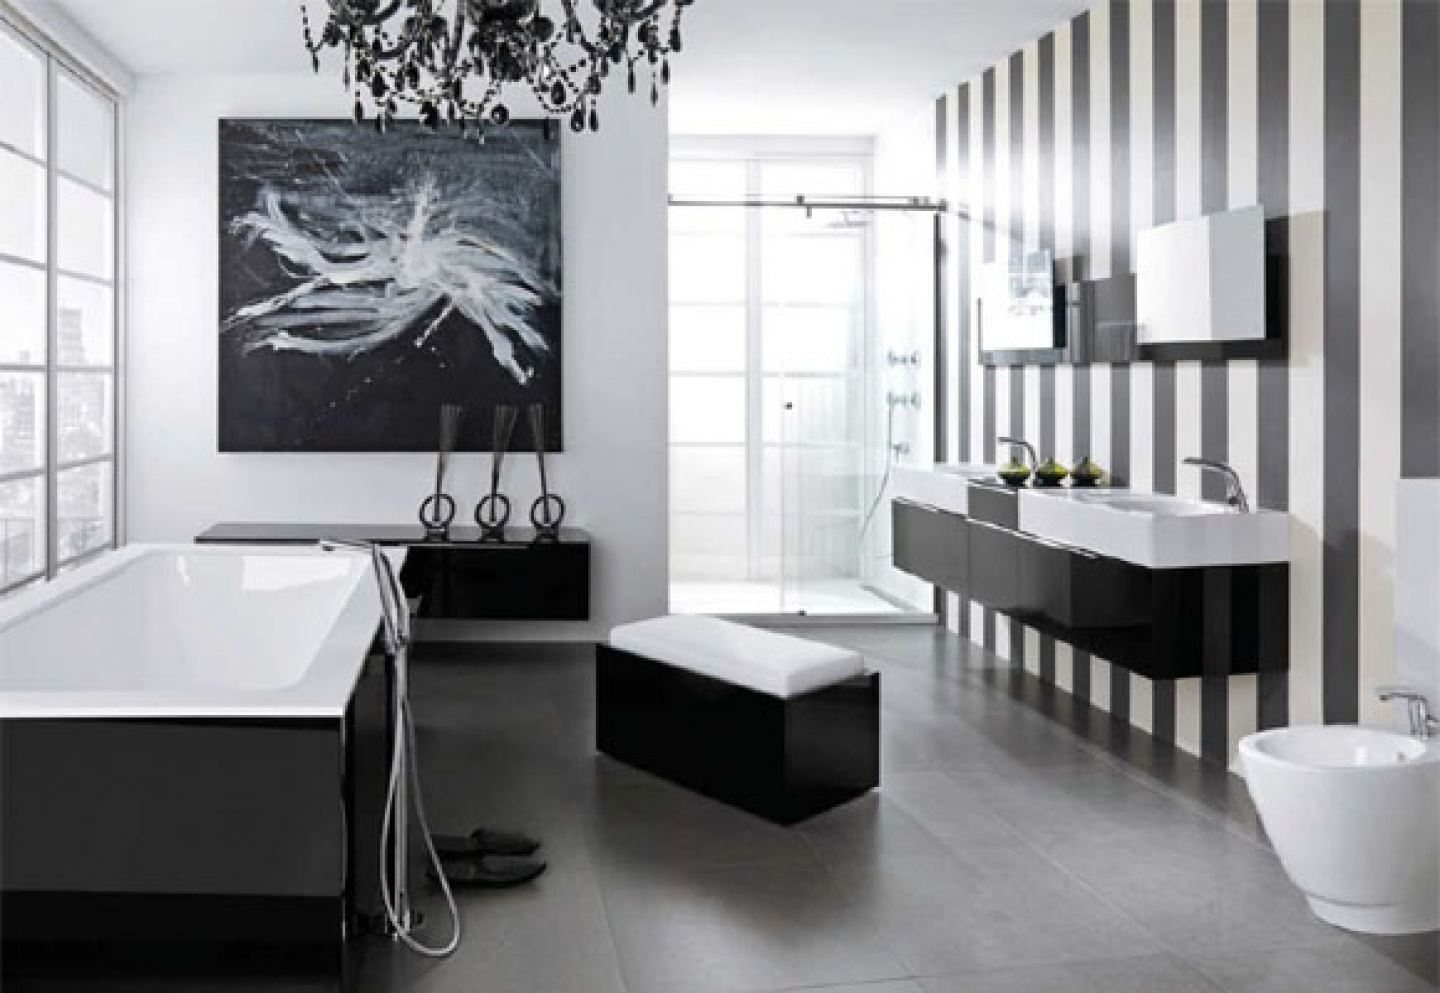 Most Current Wall Mounted Bathroom Chandeliers With Regard To Black And White Bathroom Border Tiles Black White Glossy Finished (View 13 of 15)